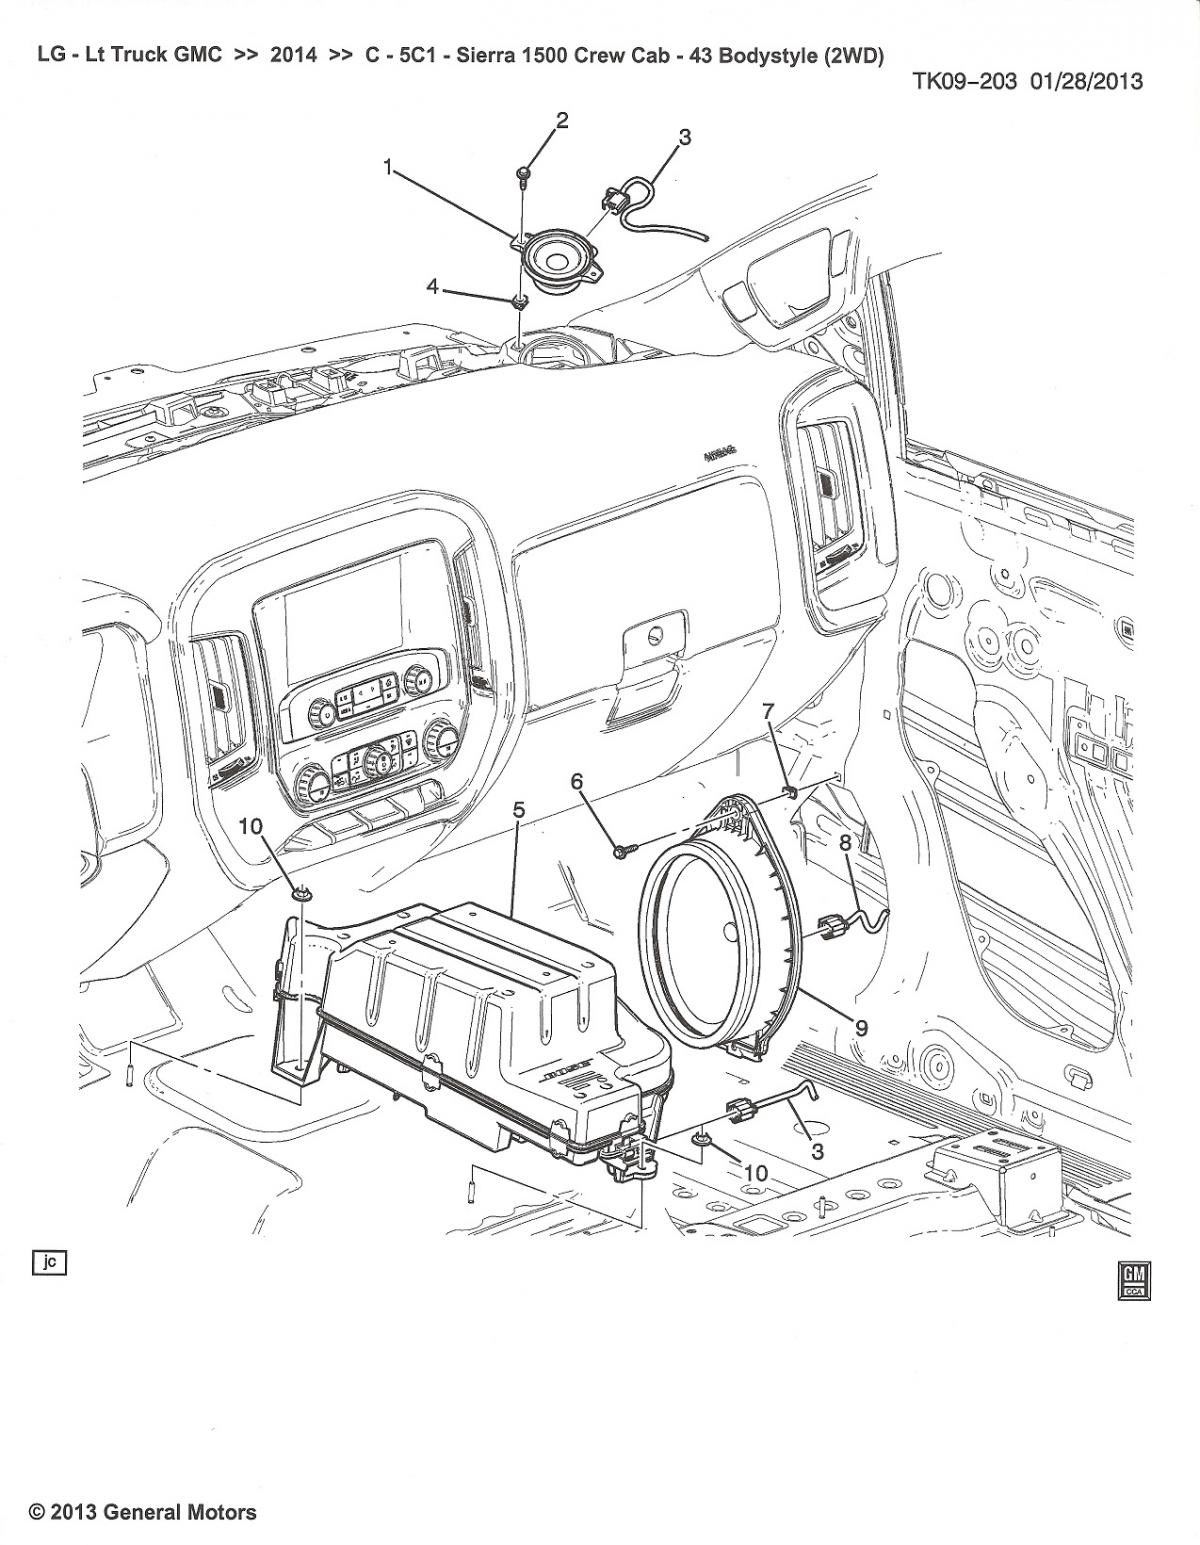 2007 ford f150 brake light wiring diagram 2008 f350 trailer mazda 3 database chevy truck drawing at getdrawings free for personal use cannon plug